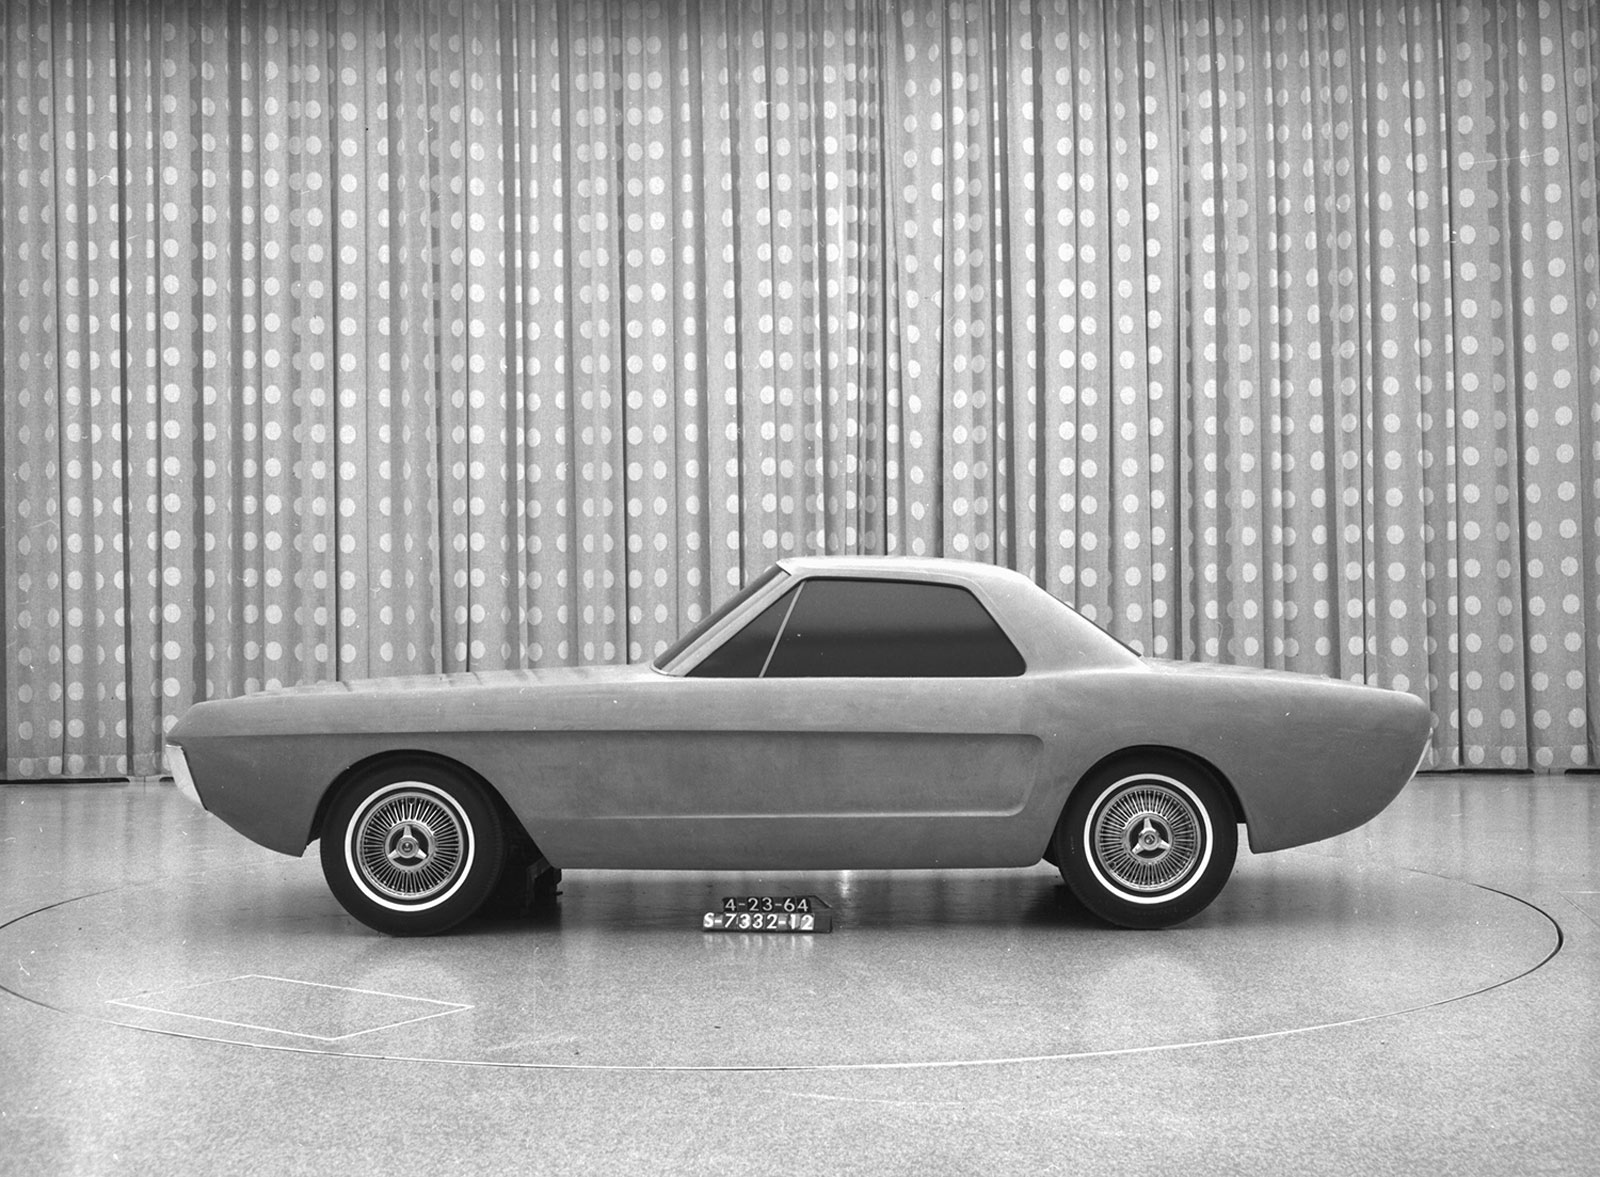 1964 Ford Mustang Two Seater Design Study Clay Model Car Body Mach 1